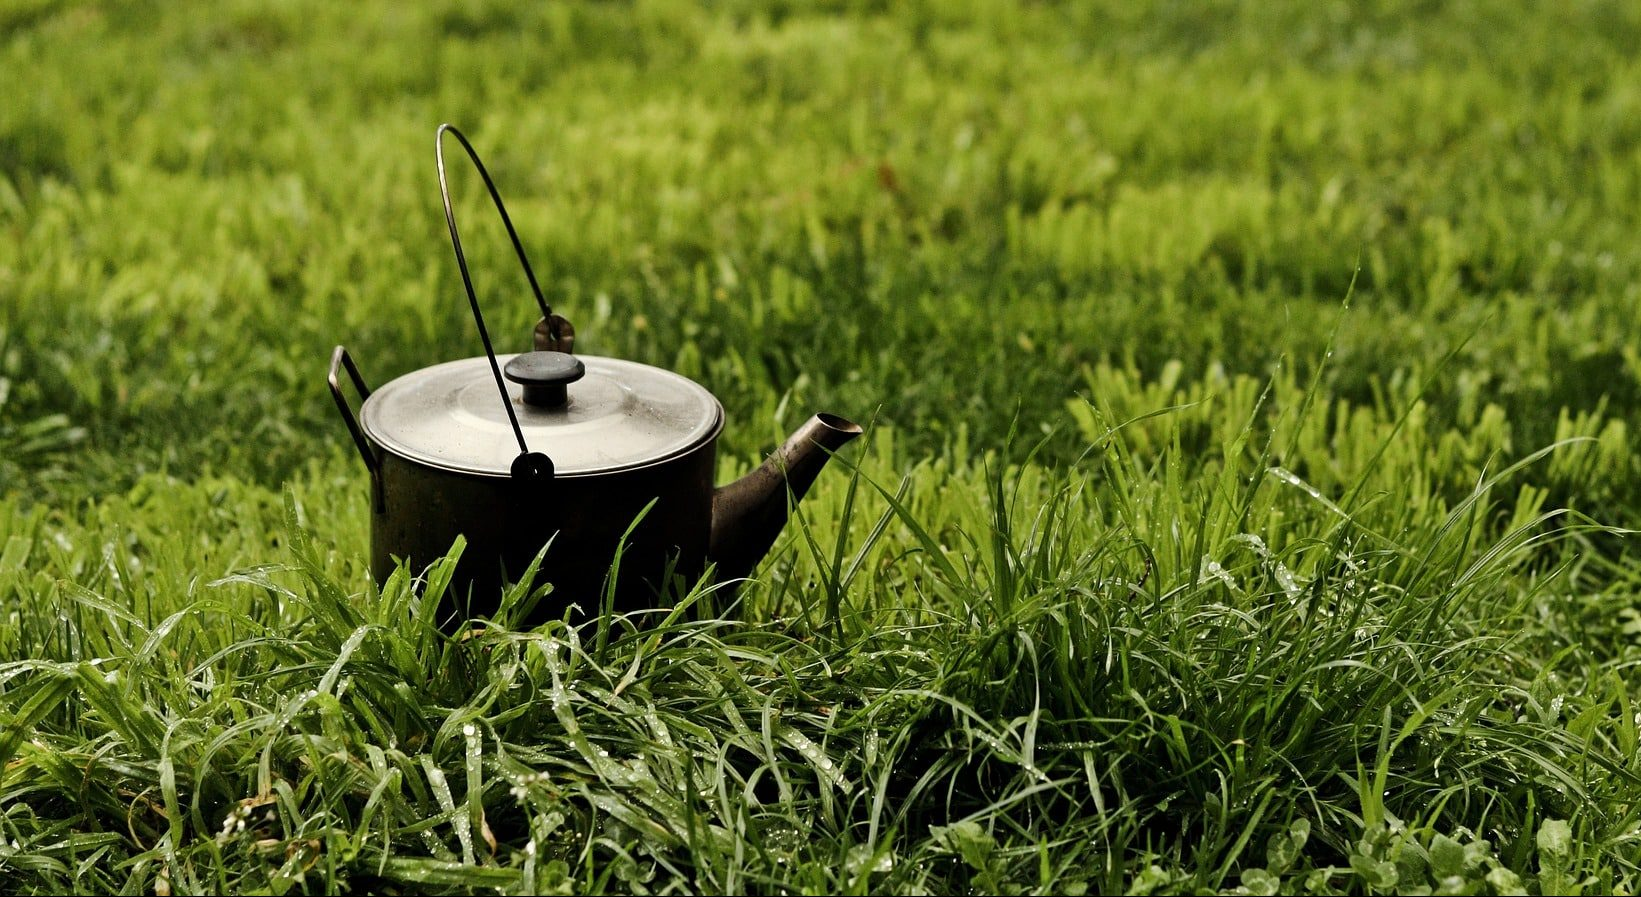 How to use camping kettle